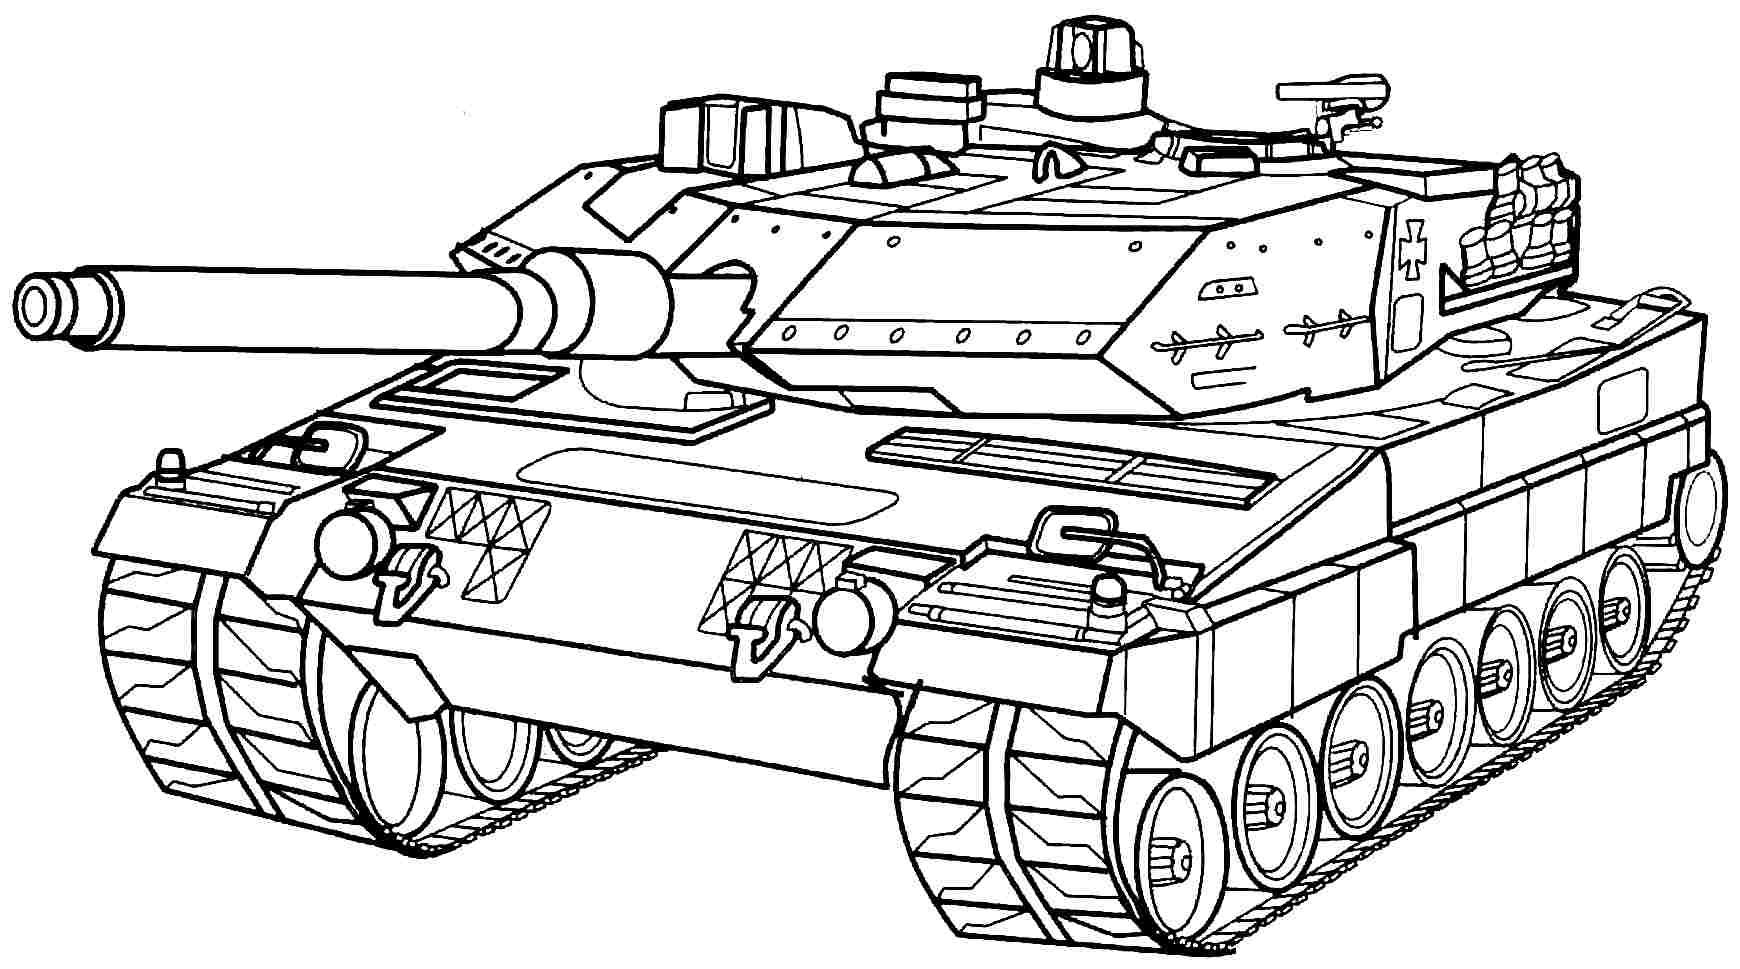 Car Coloring Pages Free Printable Coloring Pages Tank Drawing Coloring Pages Military Drawings